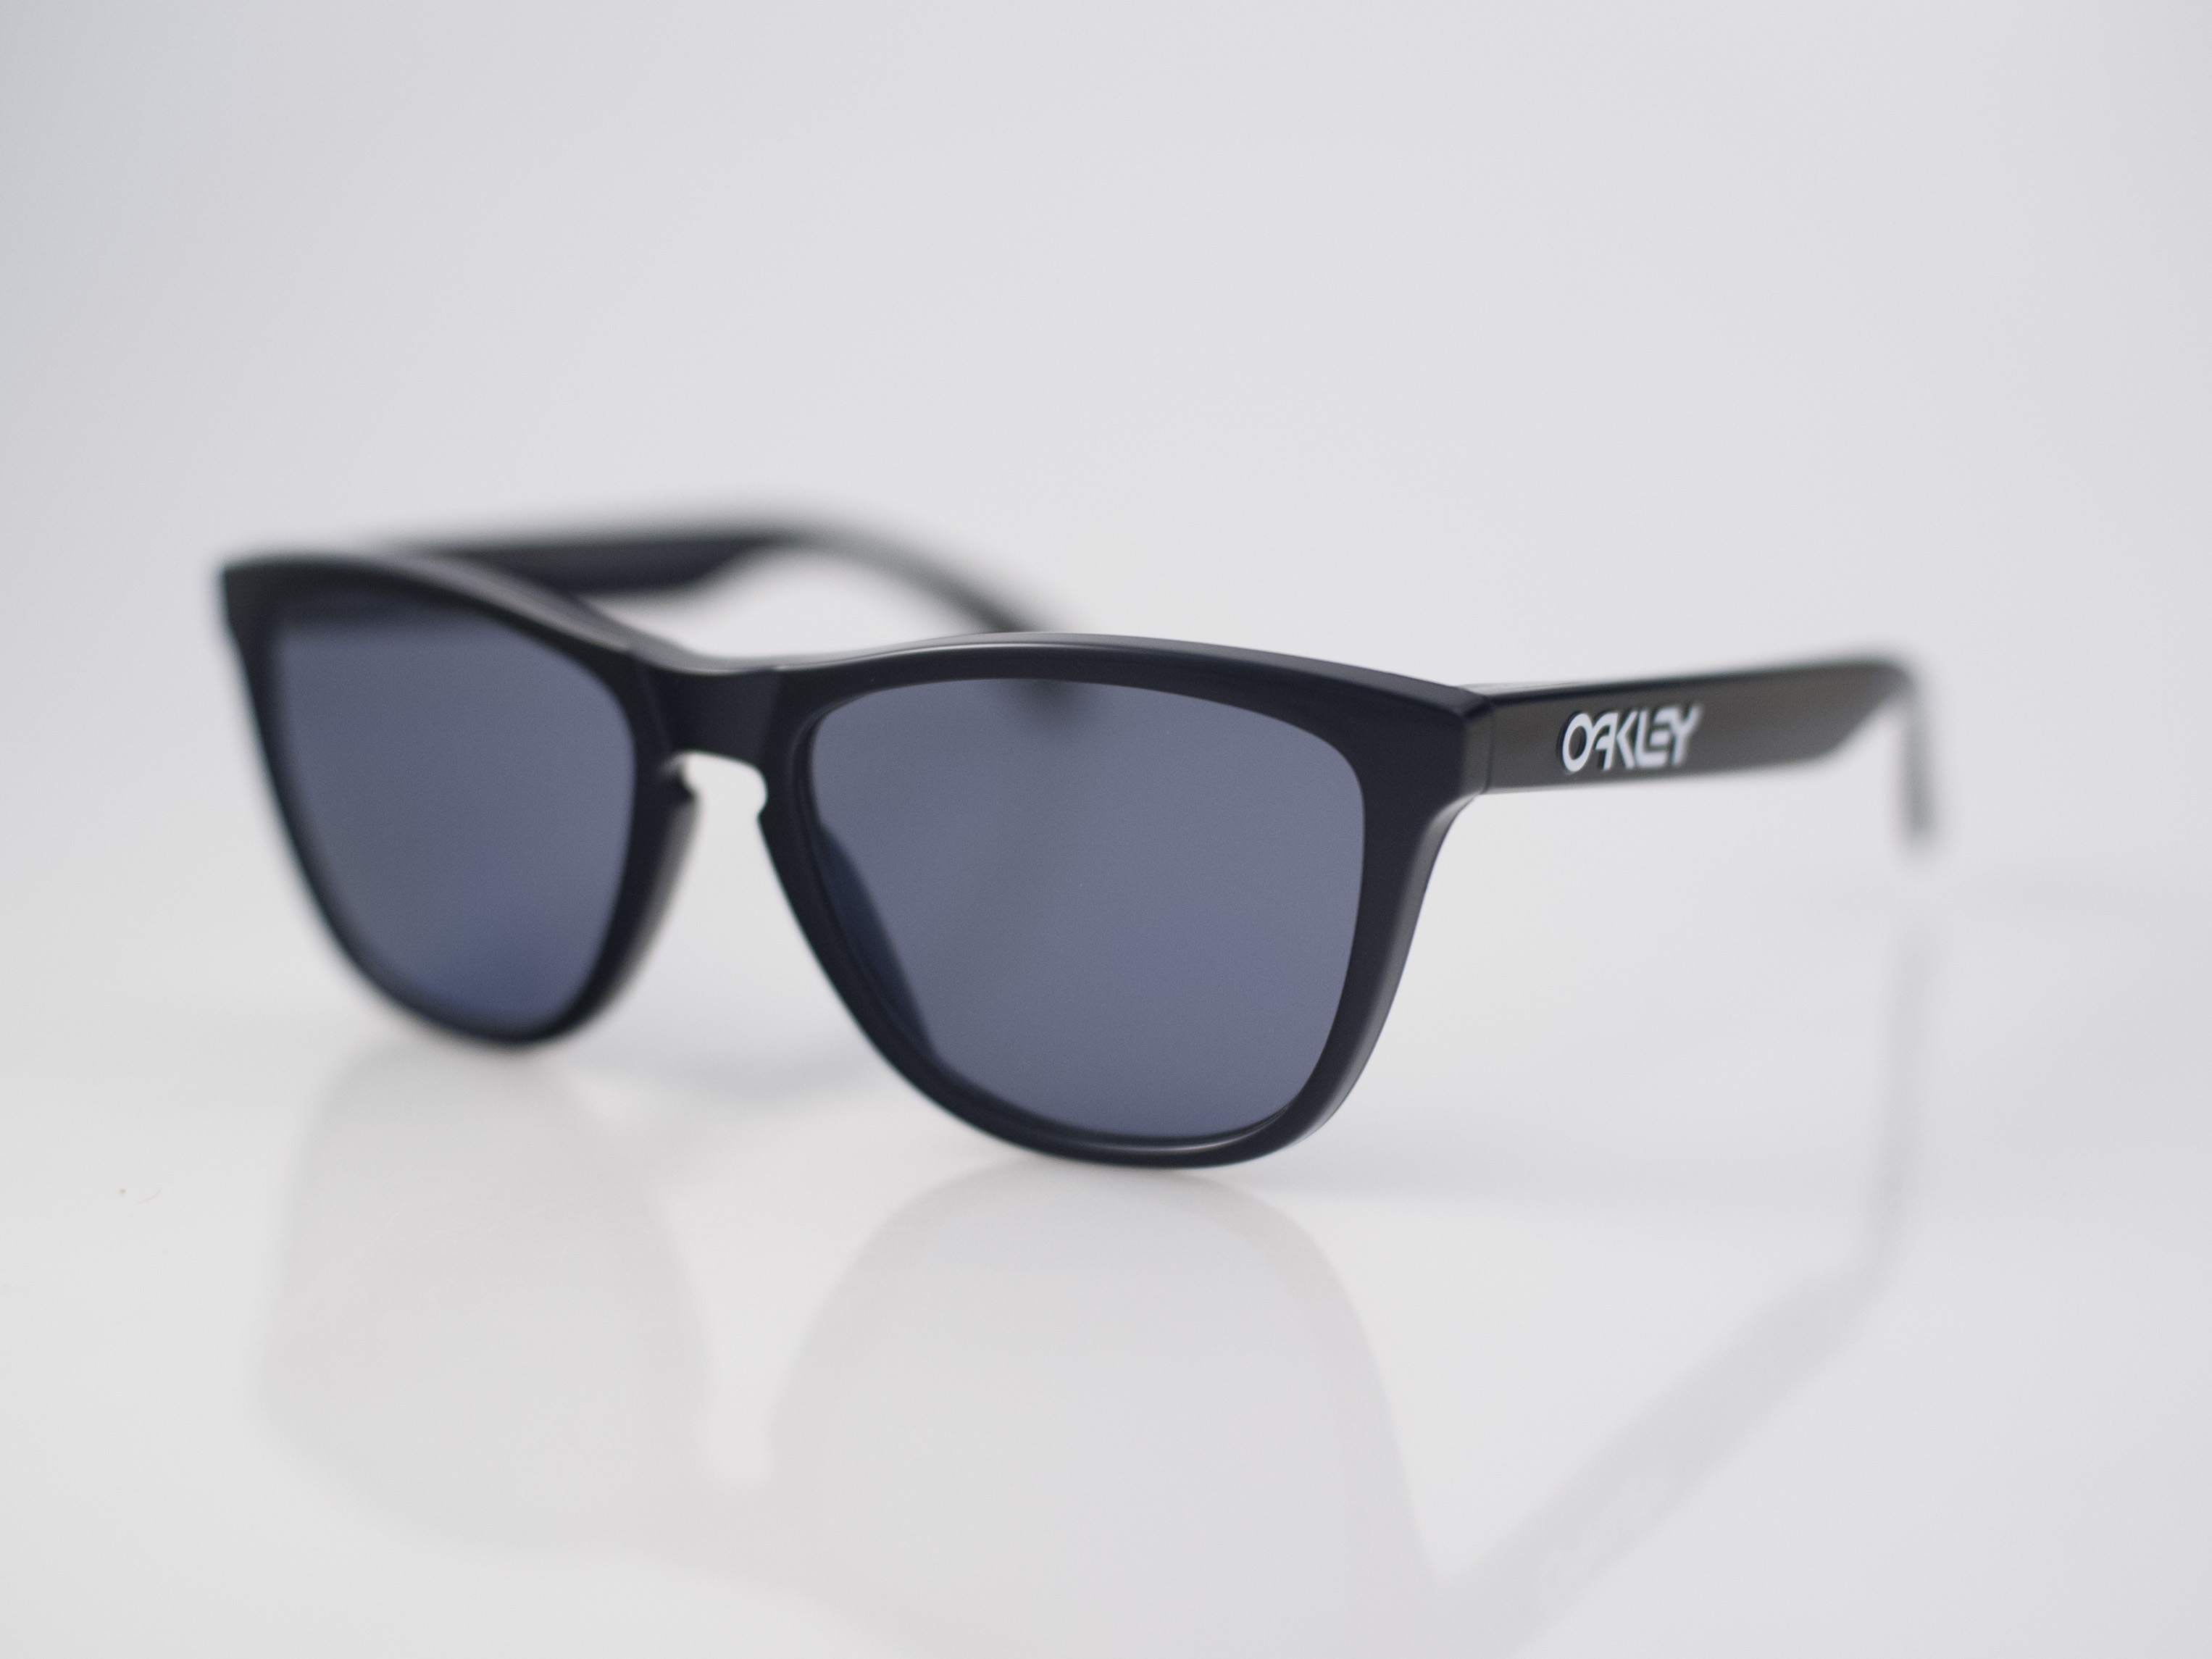 7e1cf9cac9 Oakley Sunglasses Sale On Facebook « Heritage Malta